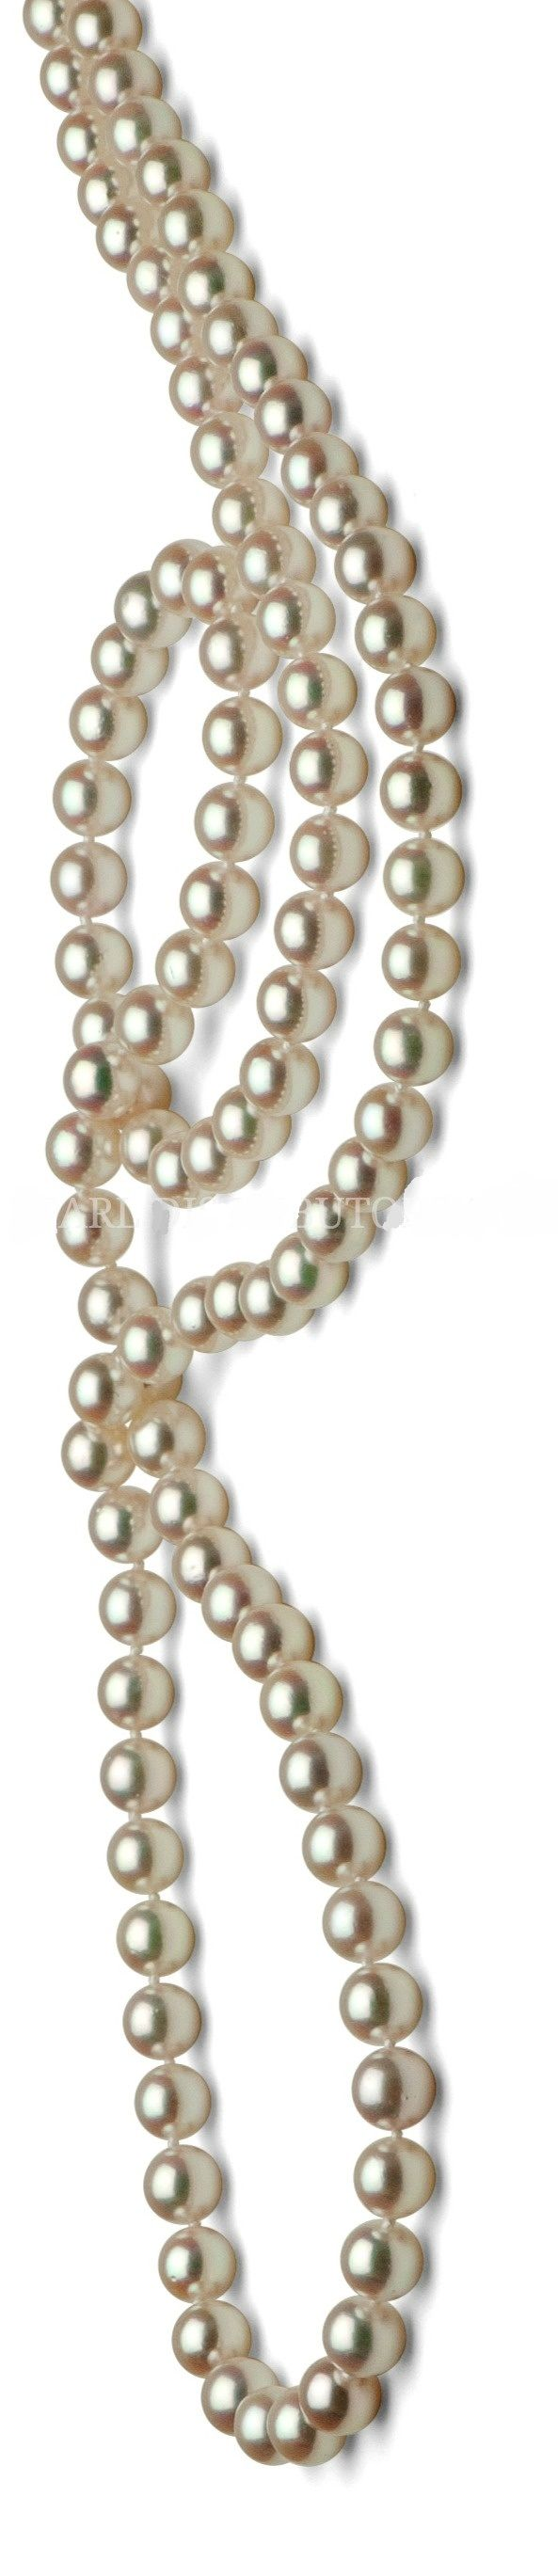 Pearls that are created with a nucleus irritant introduced by hand are cultured pearls. Most pearls today are cultured whether saltwater or freshwater.